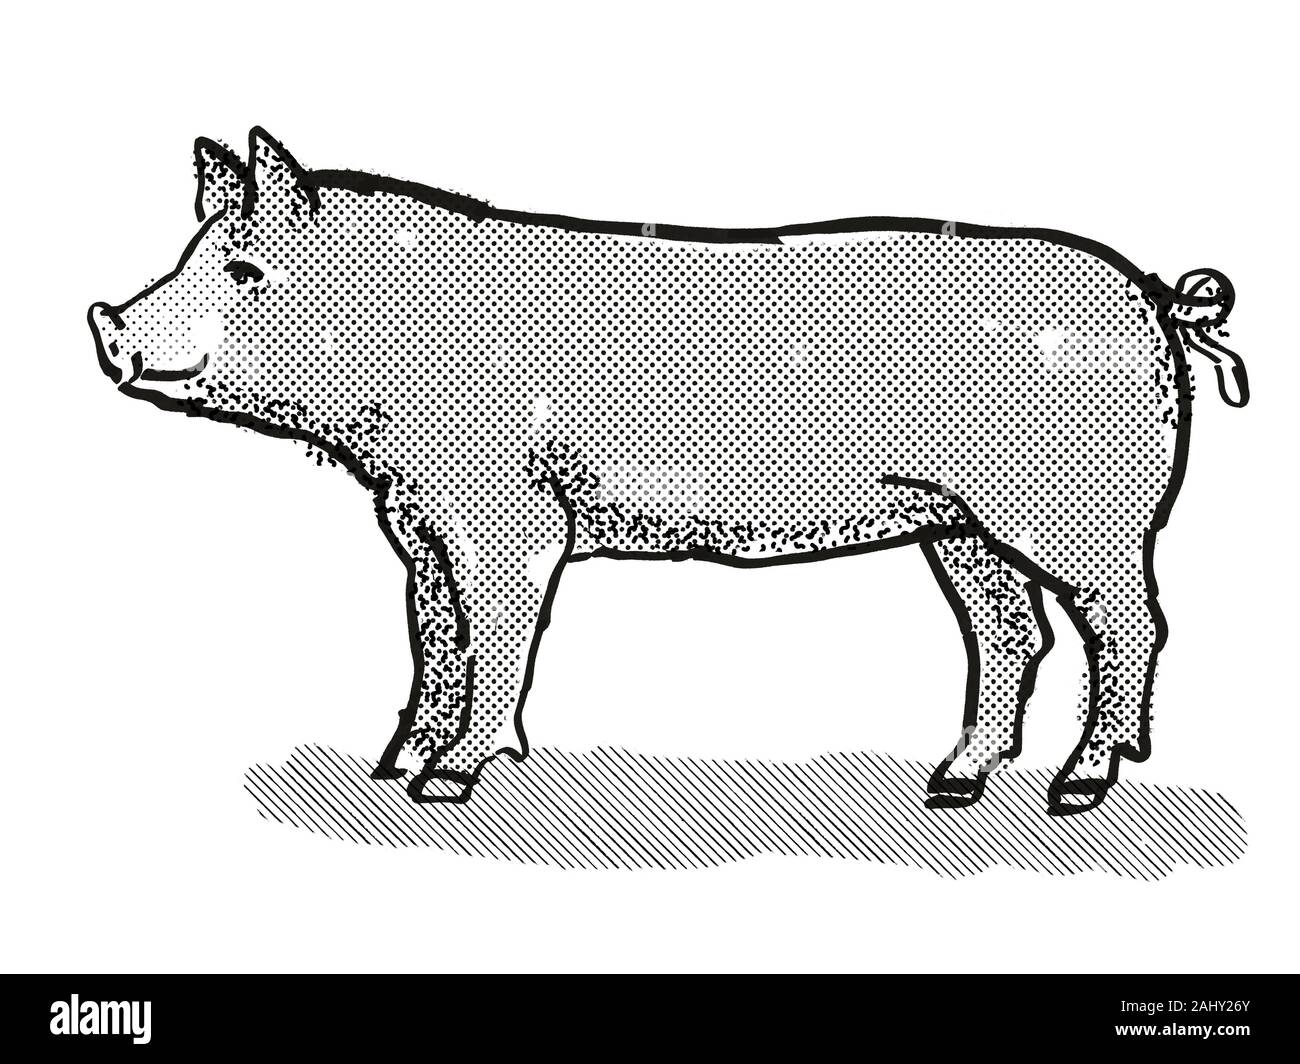 Pig Silhouette, Pig Clipart, Animal Clipart, Animal Sketch PNG and Vector  with Transparent Background for Free Download | Pig silhouette, Pig clipart,  Animal clipart